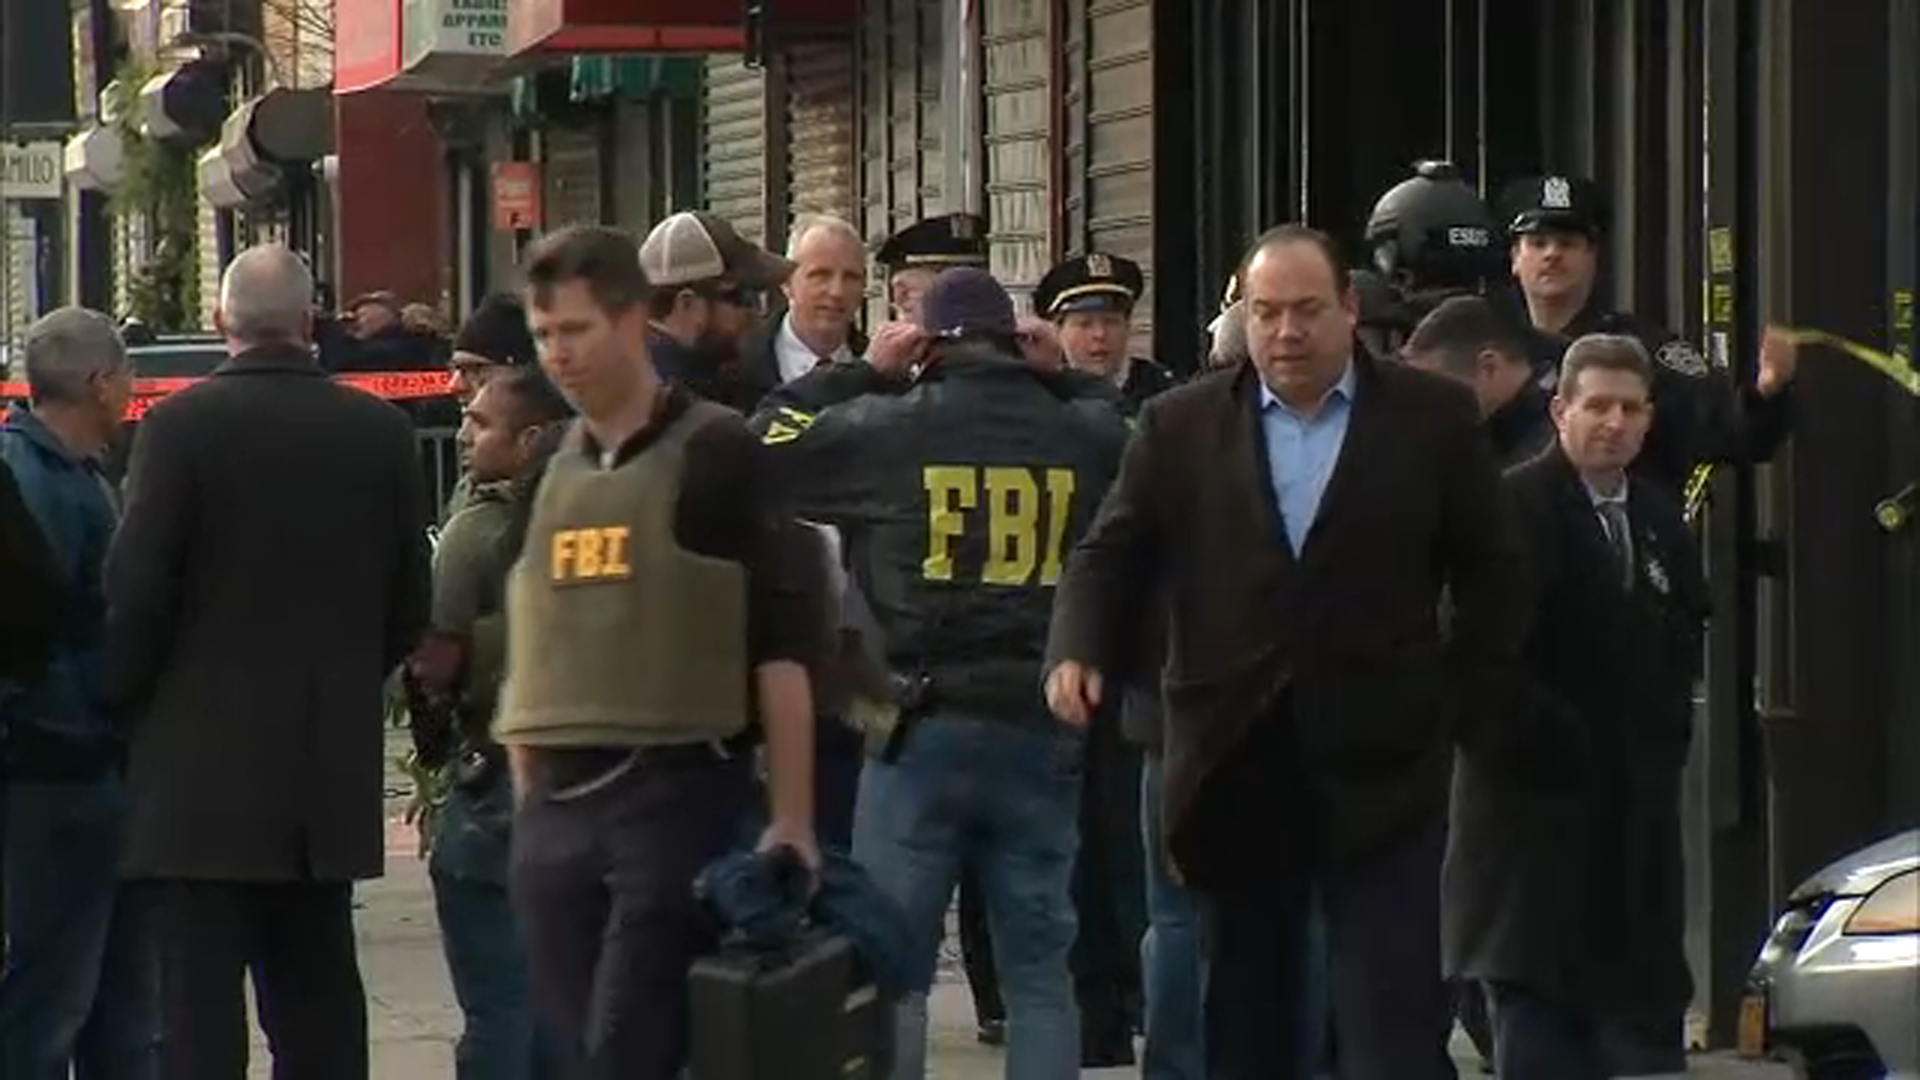 20ee7ef8a Standoff leads to shots fired by FBI agent in Brooklyn, 1 in custody